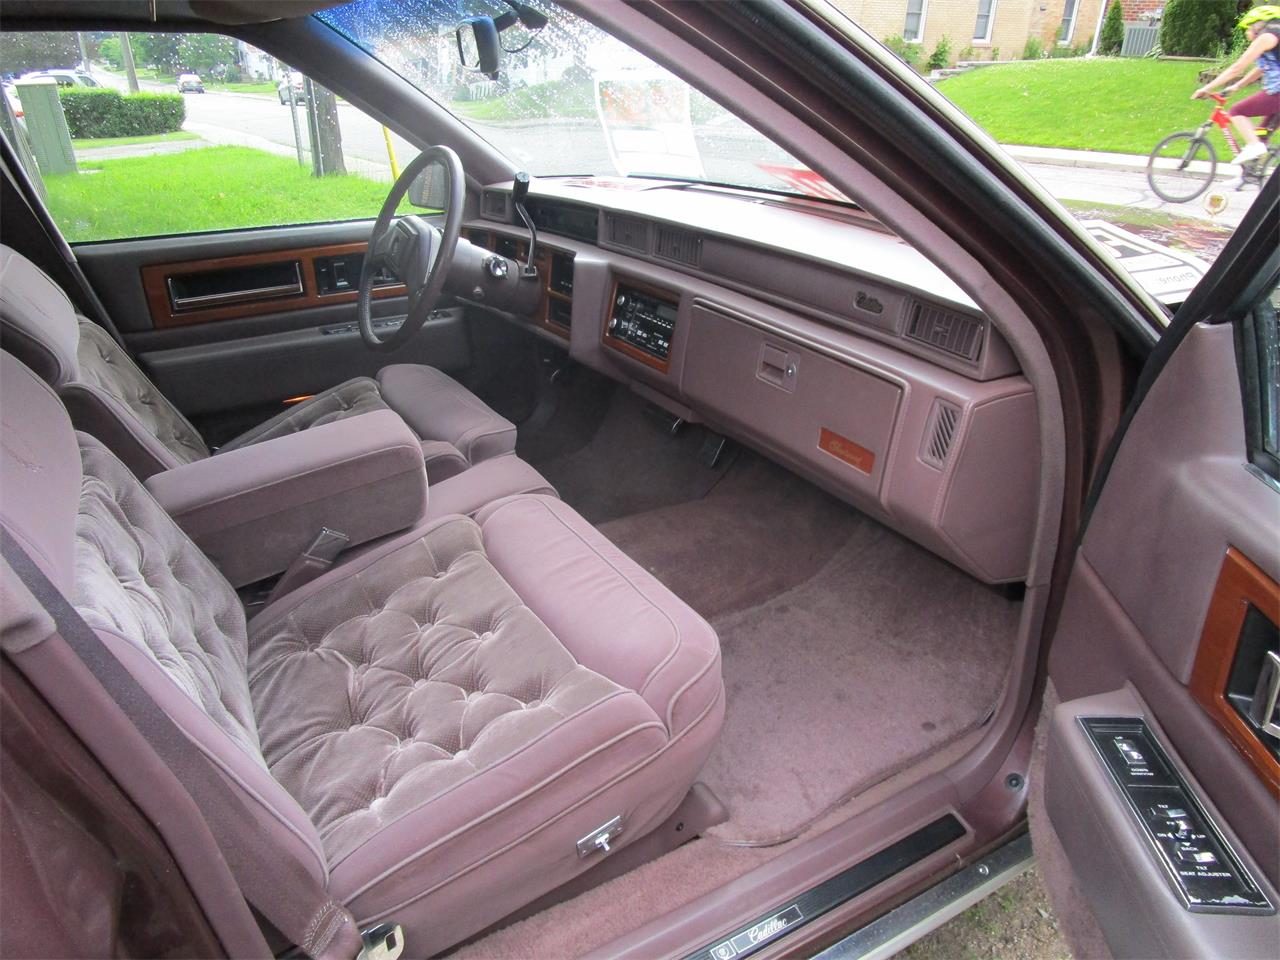 Large Picture of 1989 Cadillac Fleetwood located in Woodstock Ontario - $5,900.00 Offered by a Private Seller - QE5O